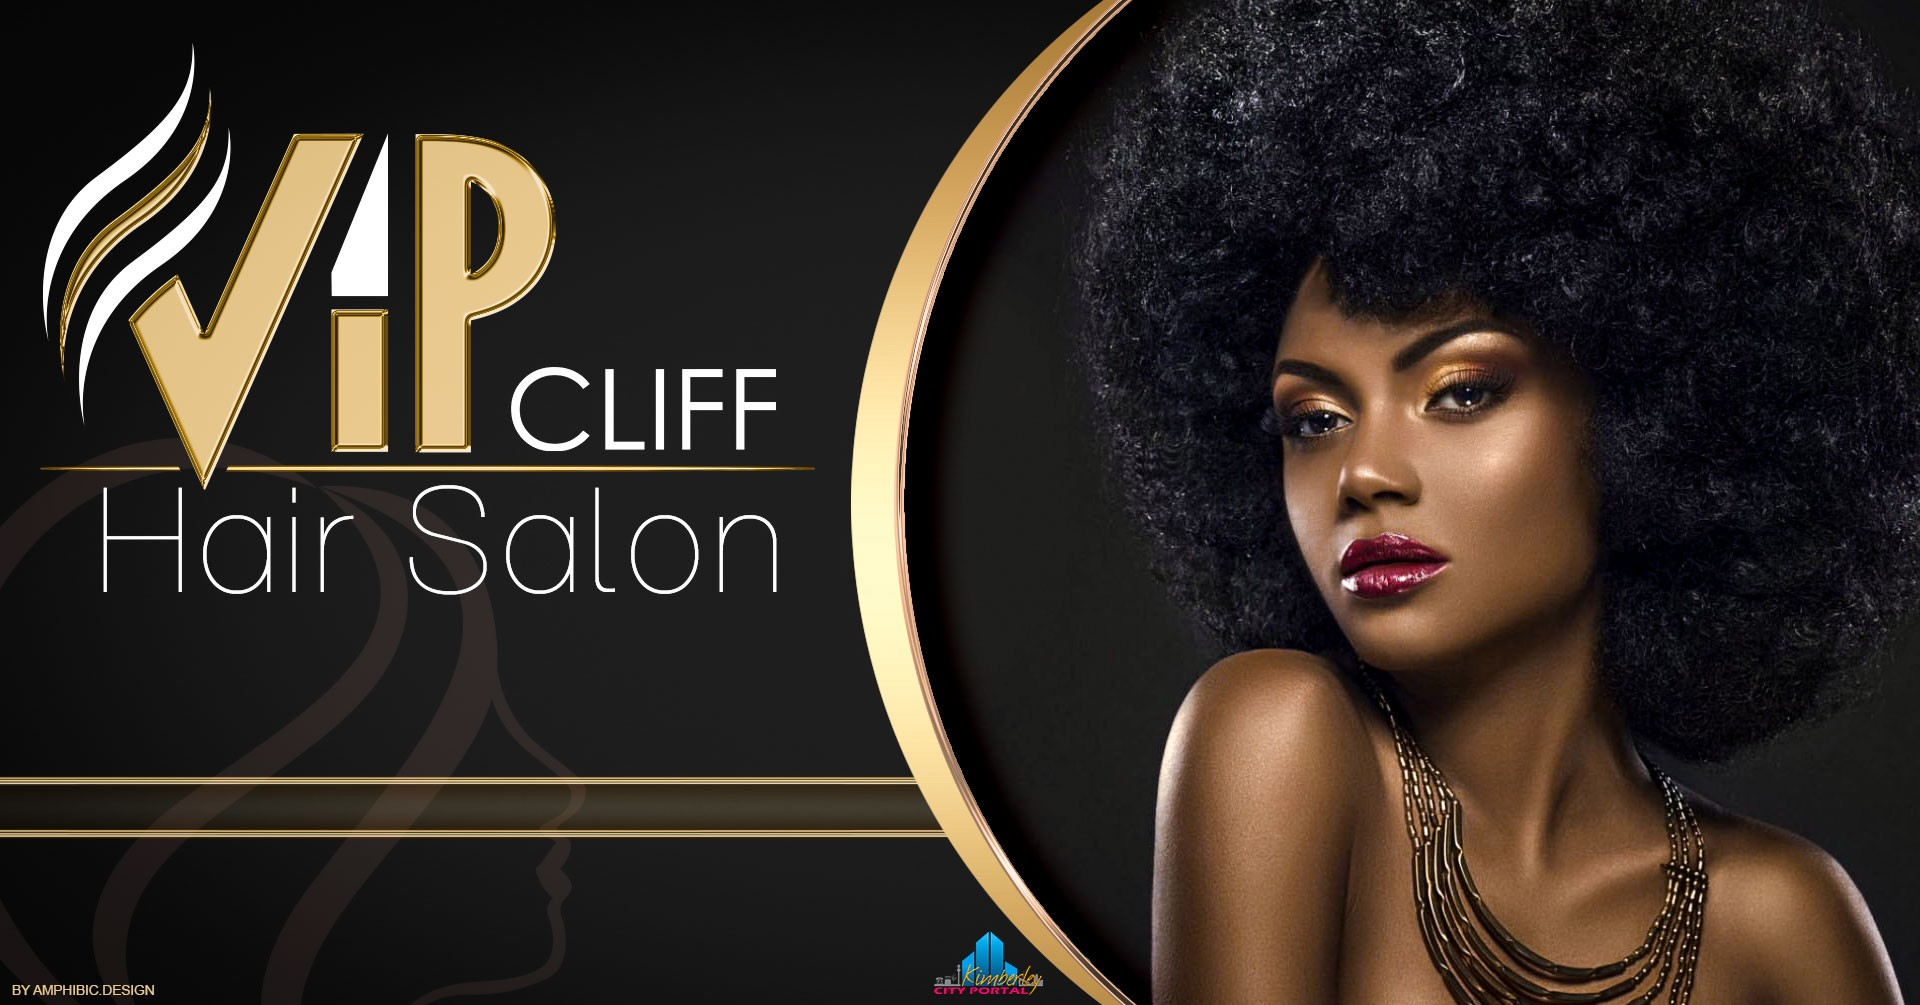 salon hair beauty cliff vip kimberley